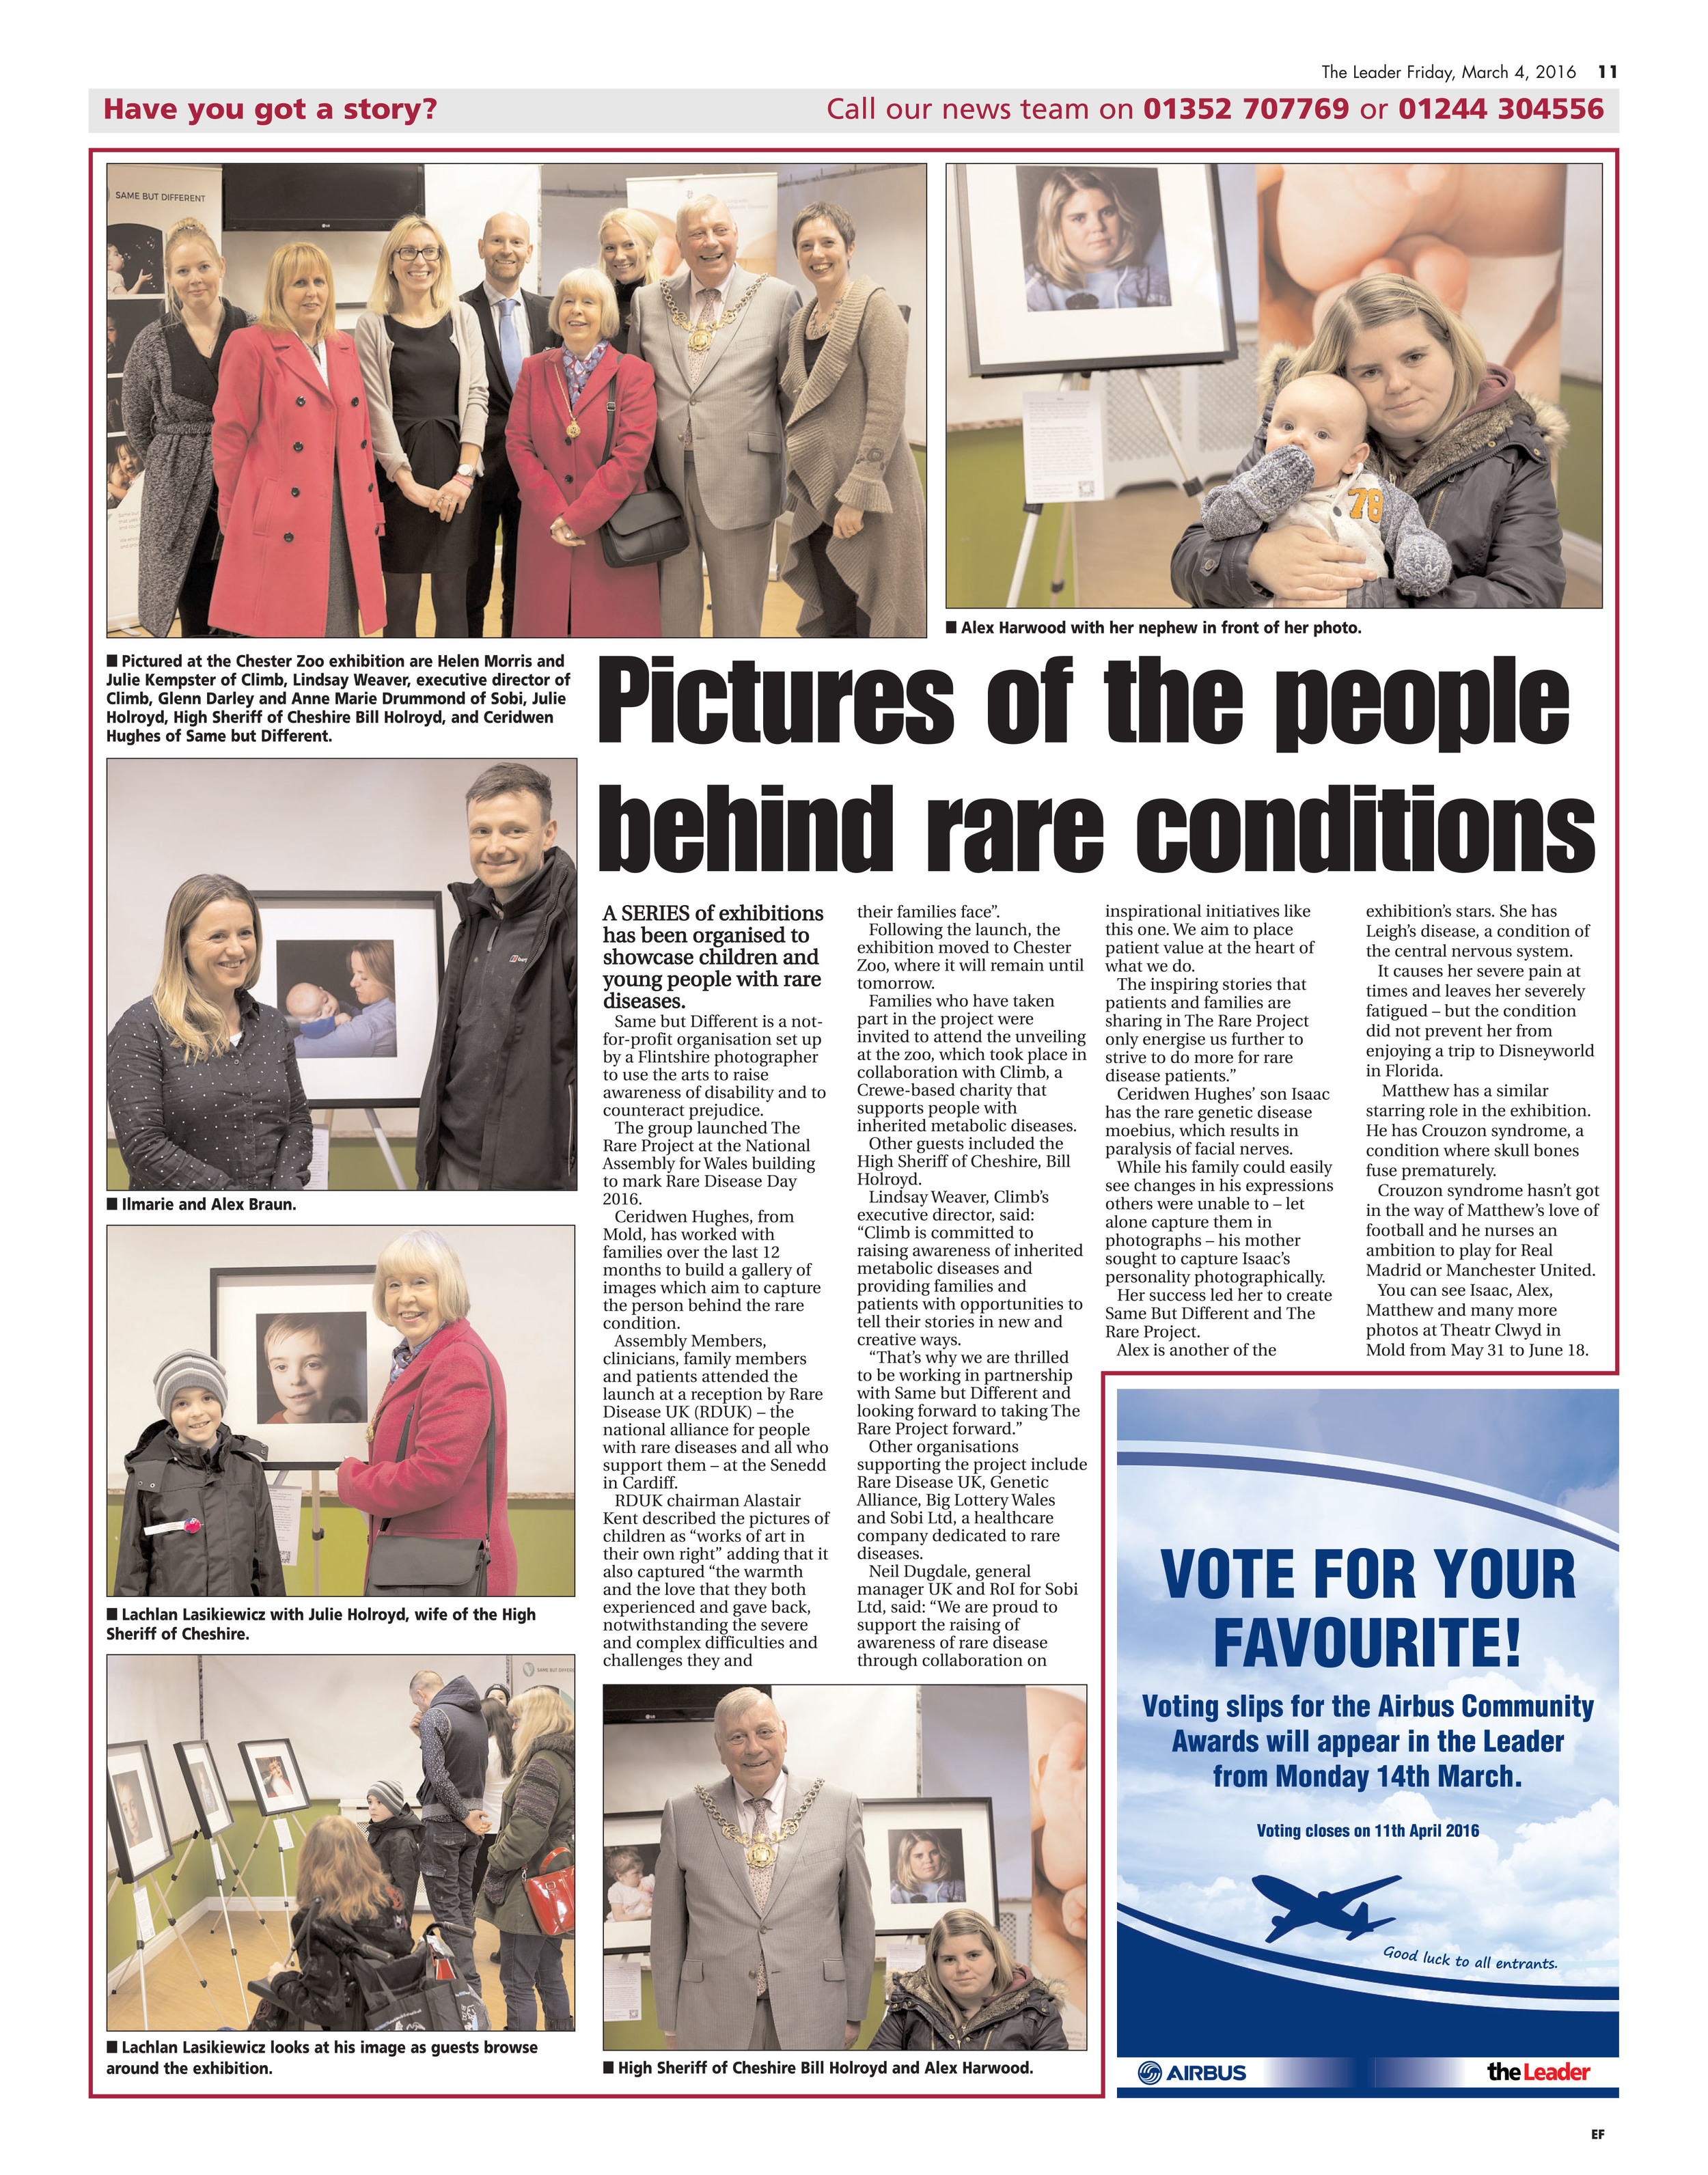 The following article appeared in the Evening Leader to highlight a series of exhibitions on Rare Disease Day